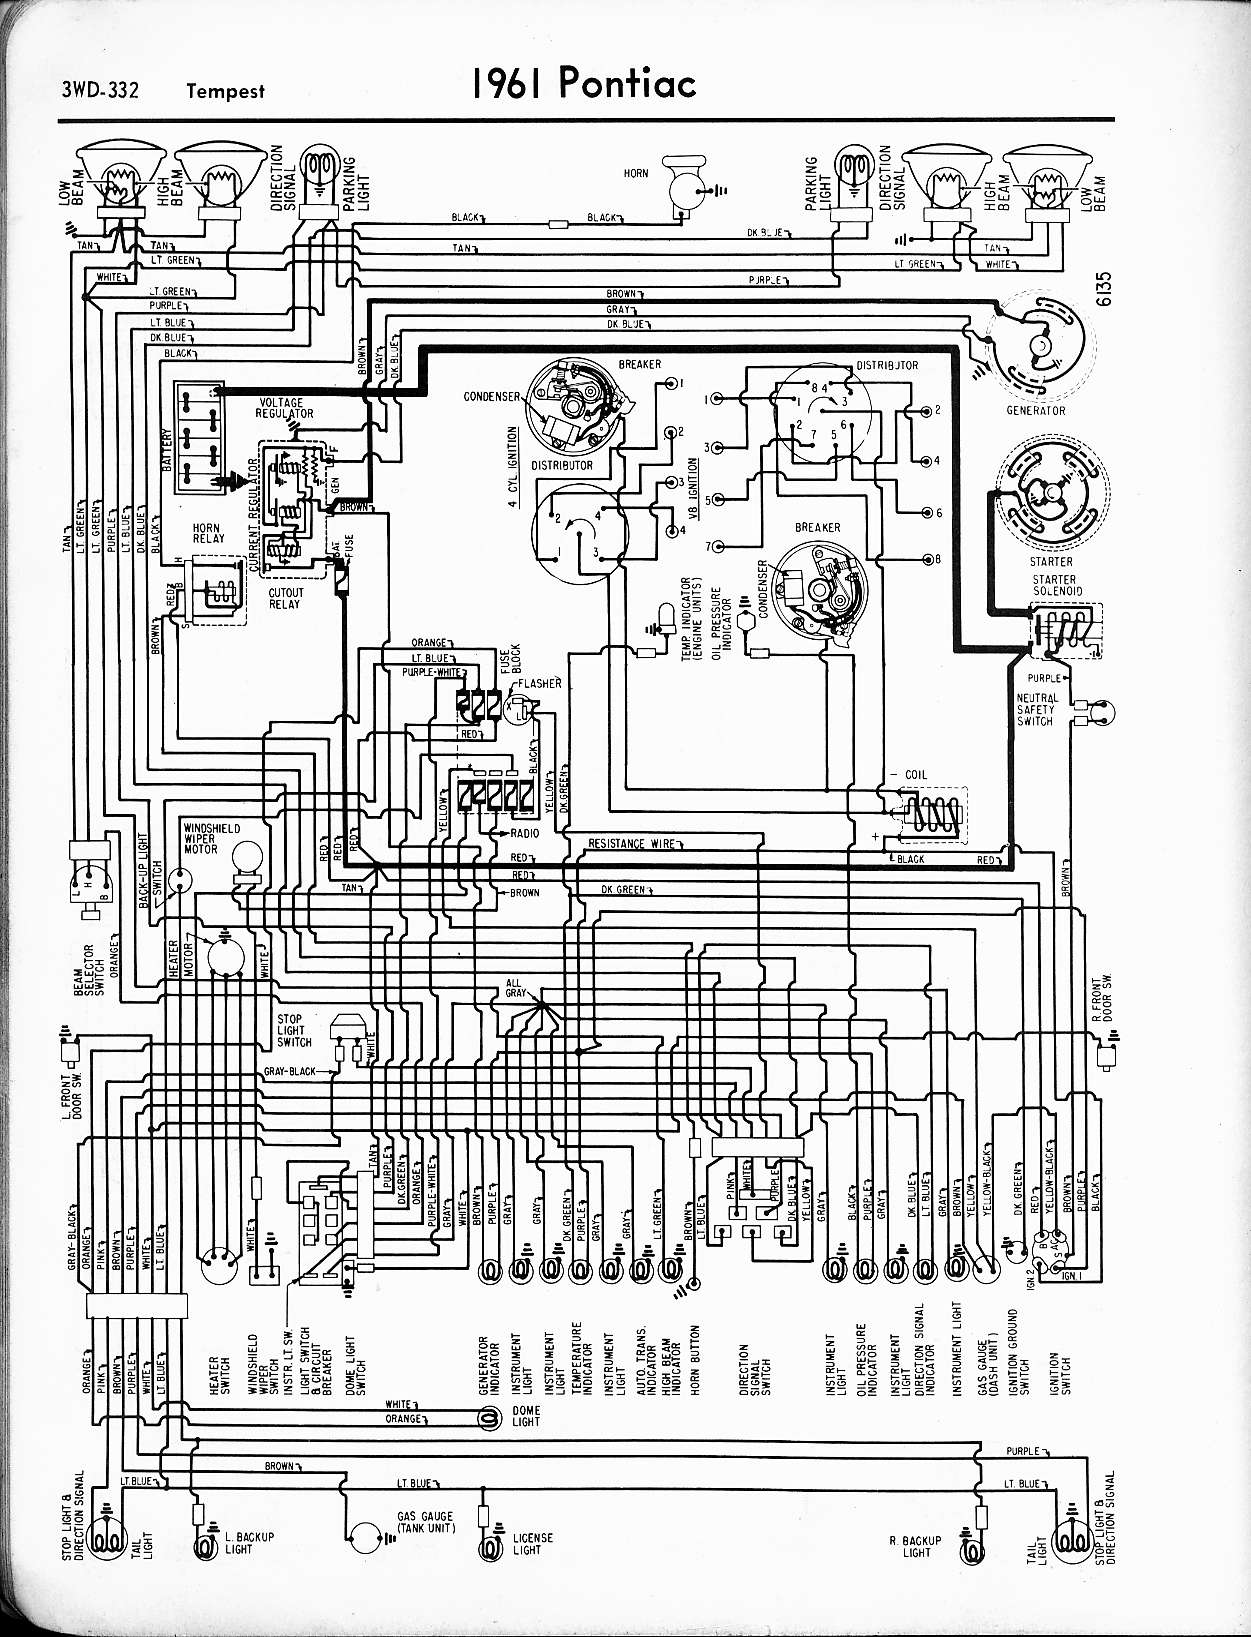 1970 Pontiac Gto Wiring Harness Diagram Content Resource Of Wiring 1965 GTO  1968 Gto Wiring Harness